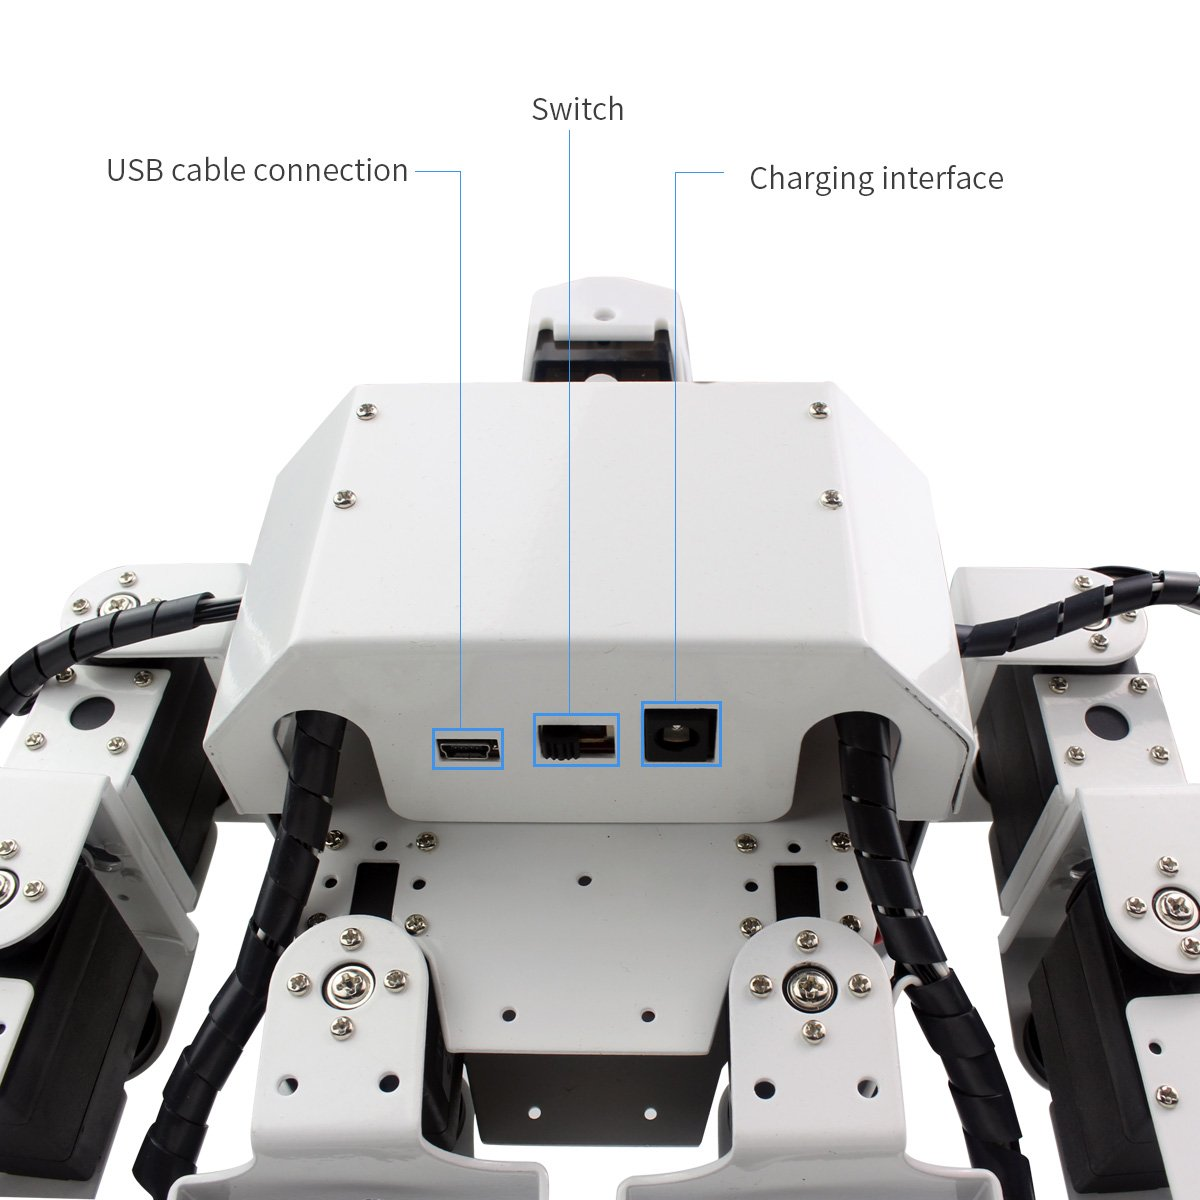 Hiwonder H3S 16DOF Biped Humanoid Robot Kit with Free APP, MP3 Module, Detailed Video Tutorial Support Sing Dance(Assembled) by LewanSoul (Image #5)